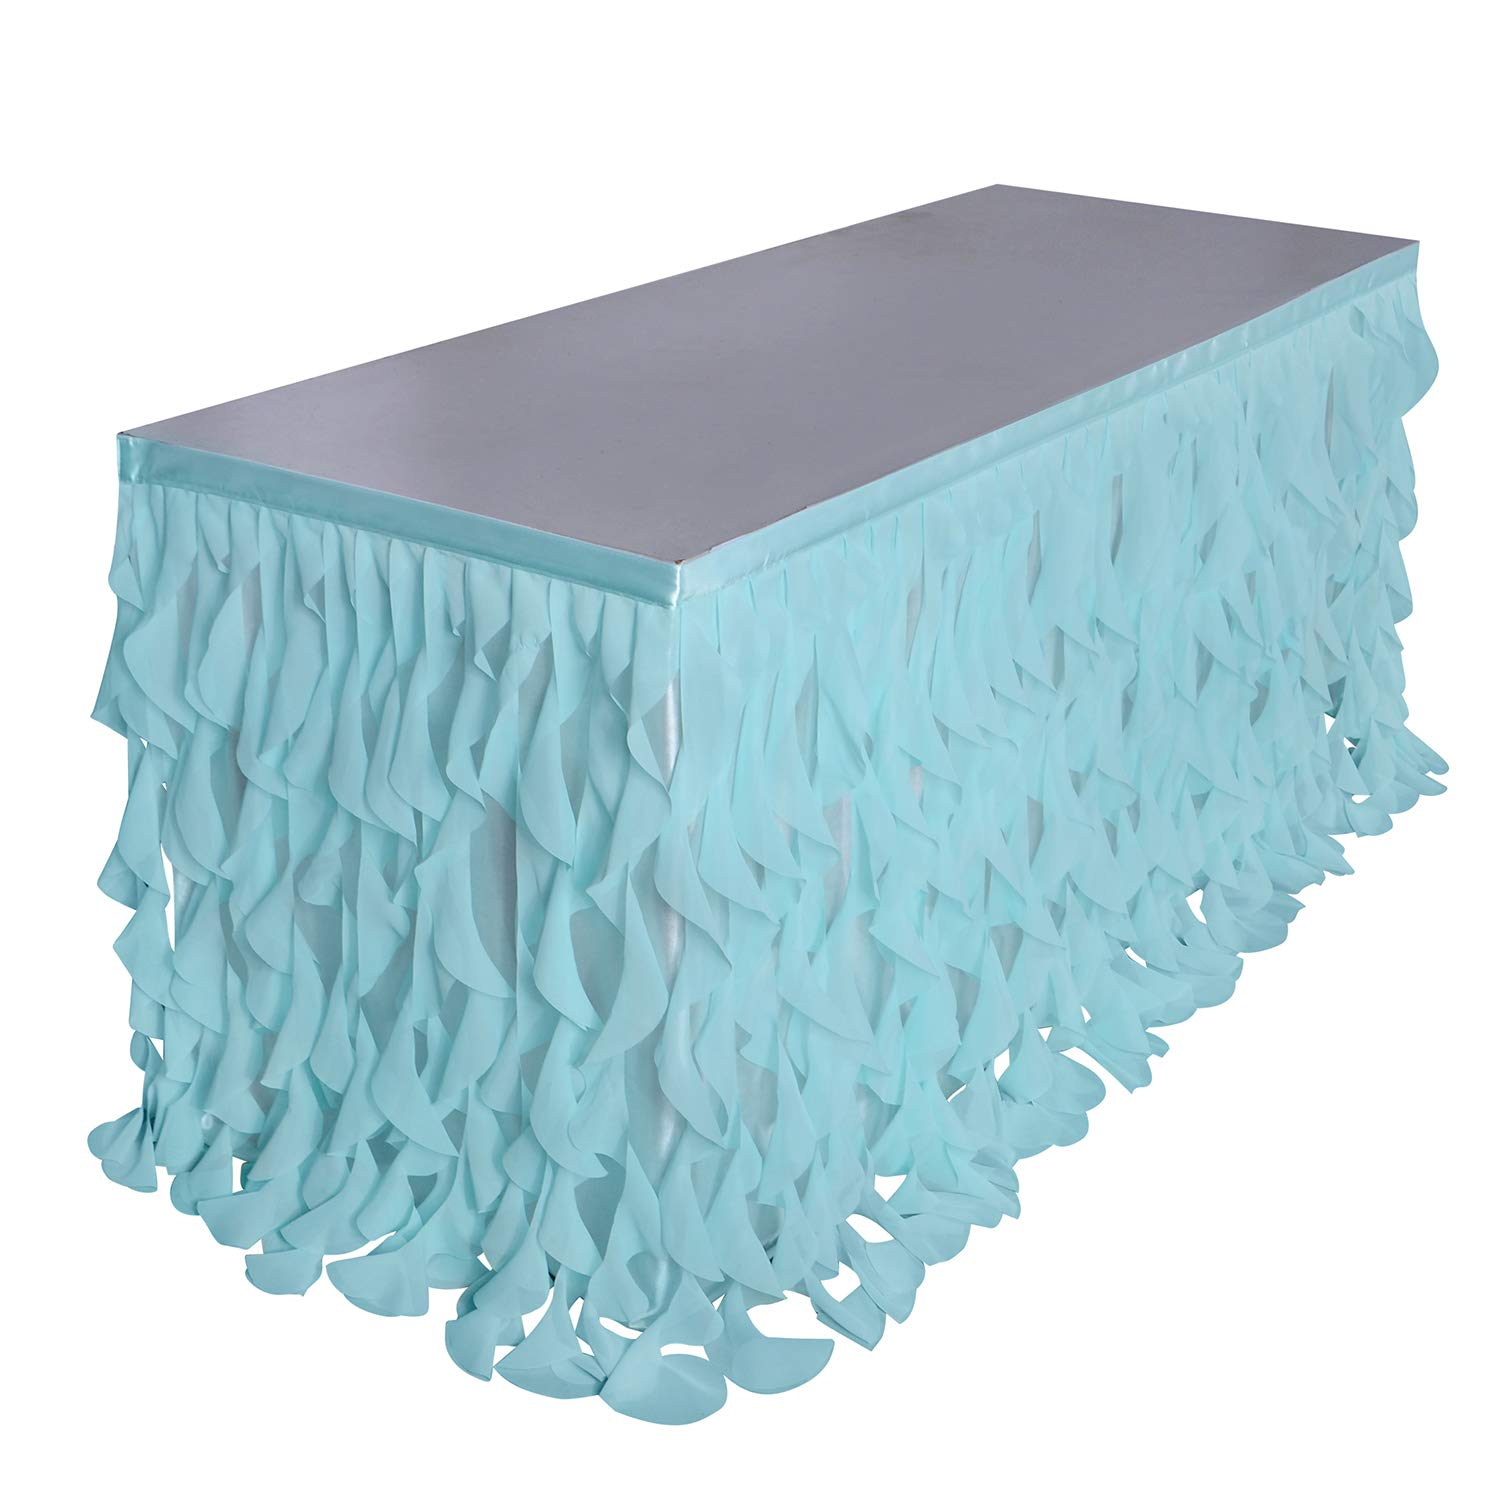 Leegleri 9ft Curly Willow Table Skirt Aqua Tulle Tutu Table Skirt Taffeta Table Skirt for Round Table or Rectangle Tables,Table Skirting for Weeding,Baby Shower Decoration